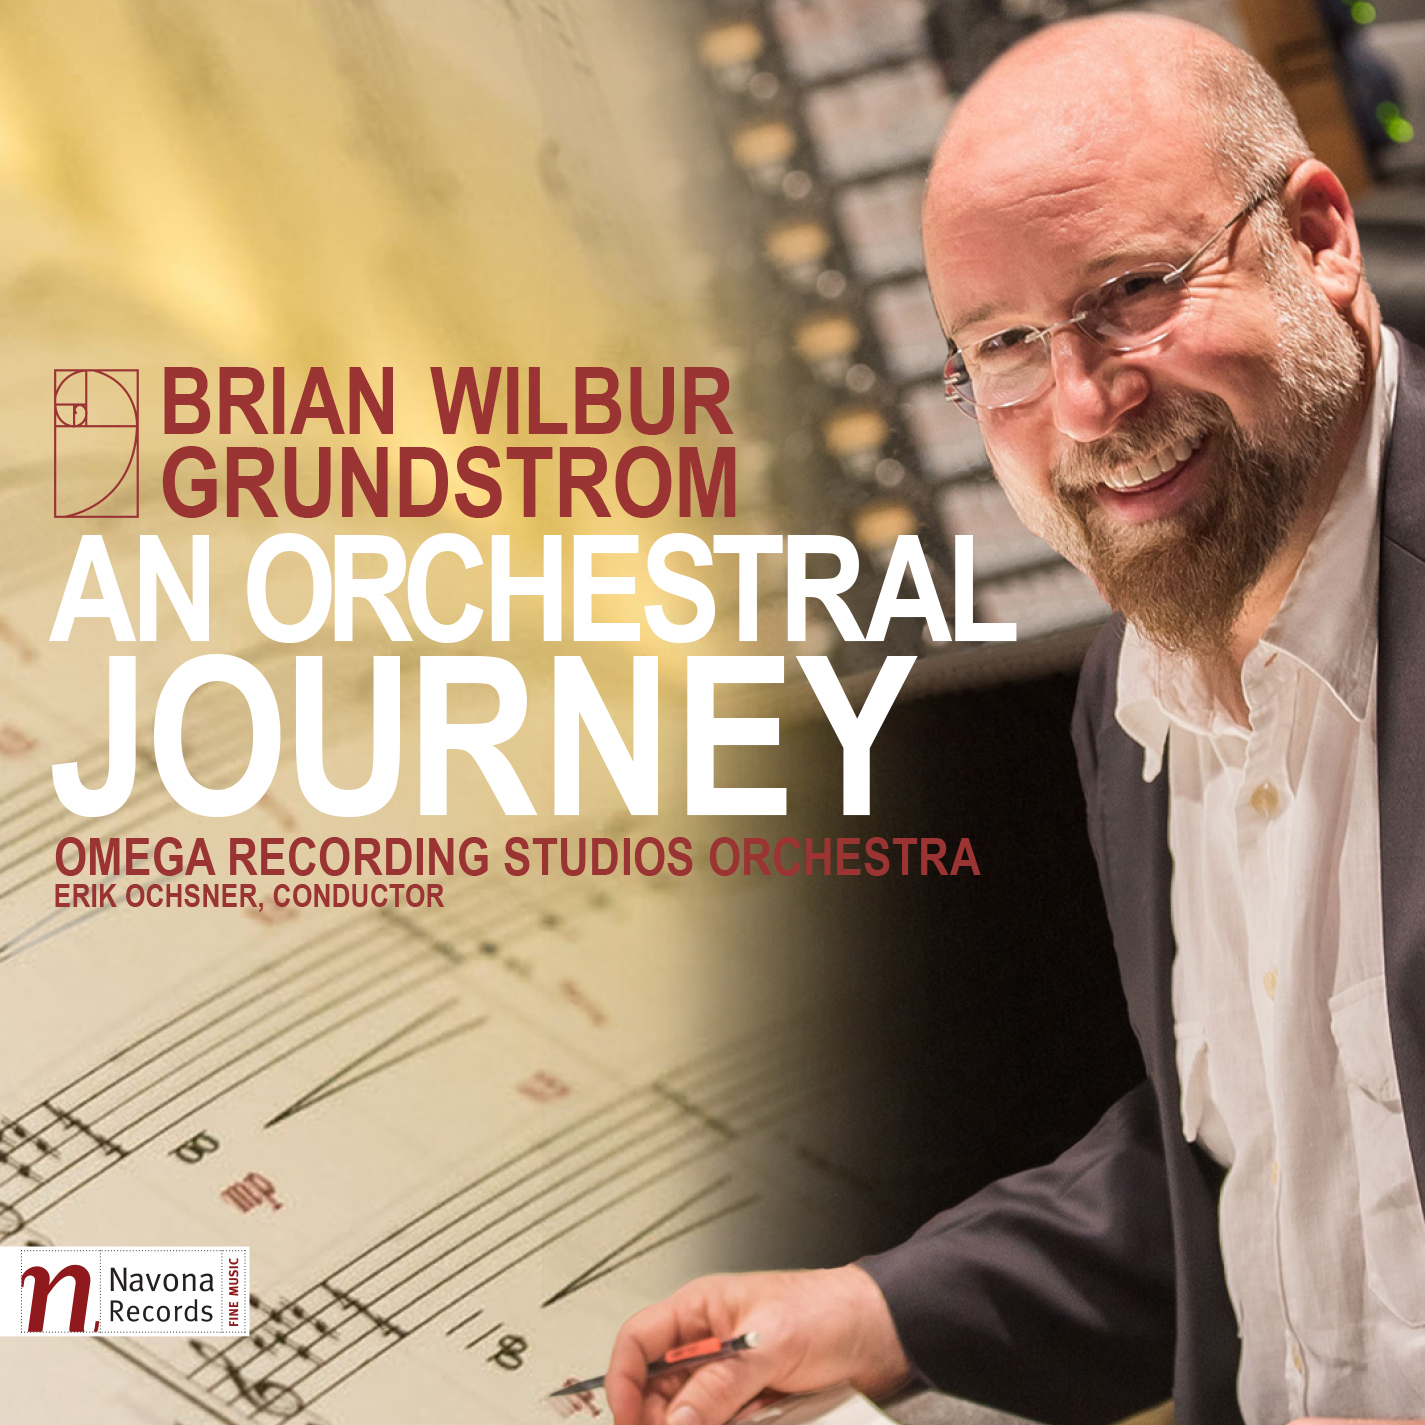 An Orchestral Journey CD Cover